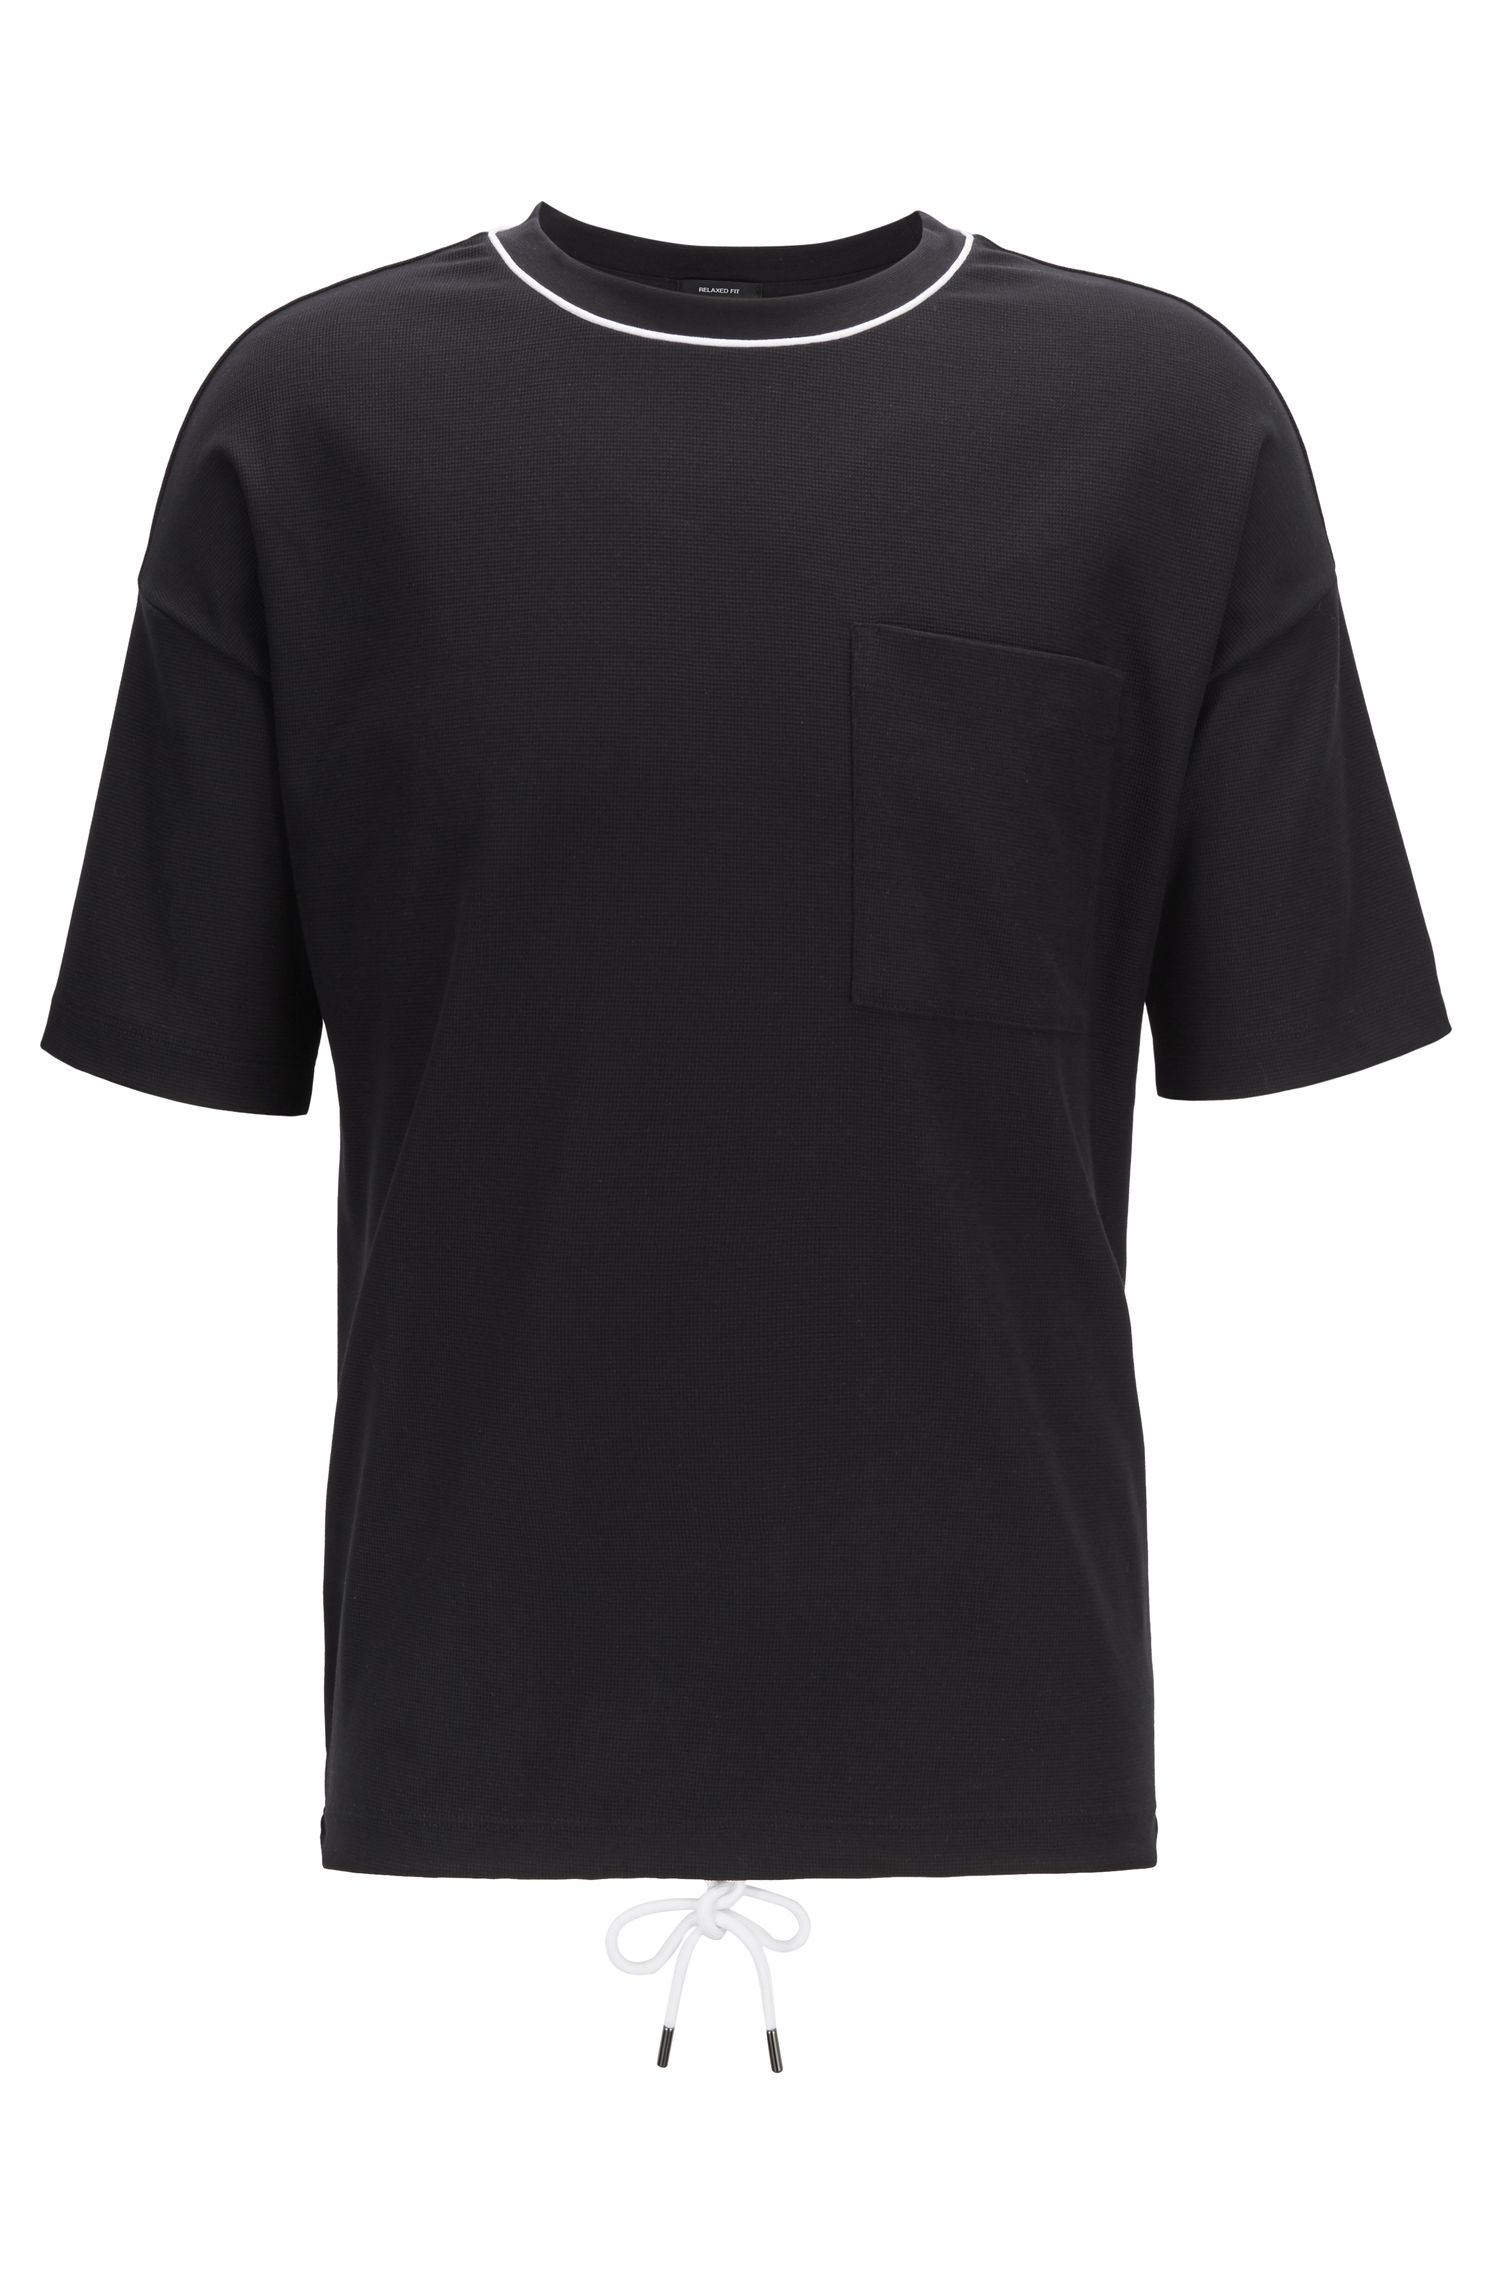 Relaxed-fit T-shirt in waffle cotton with drawstring hem, Black